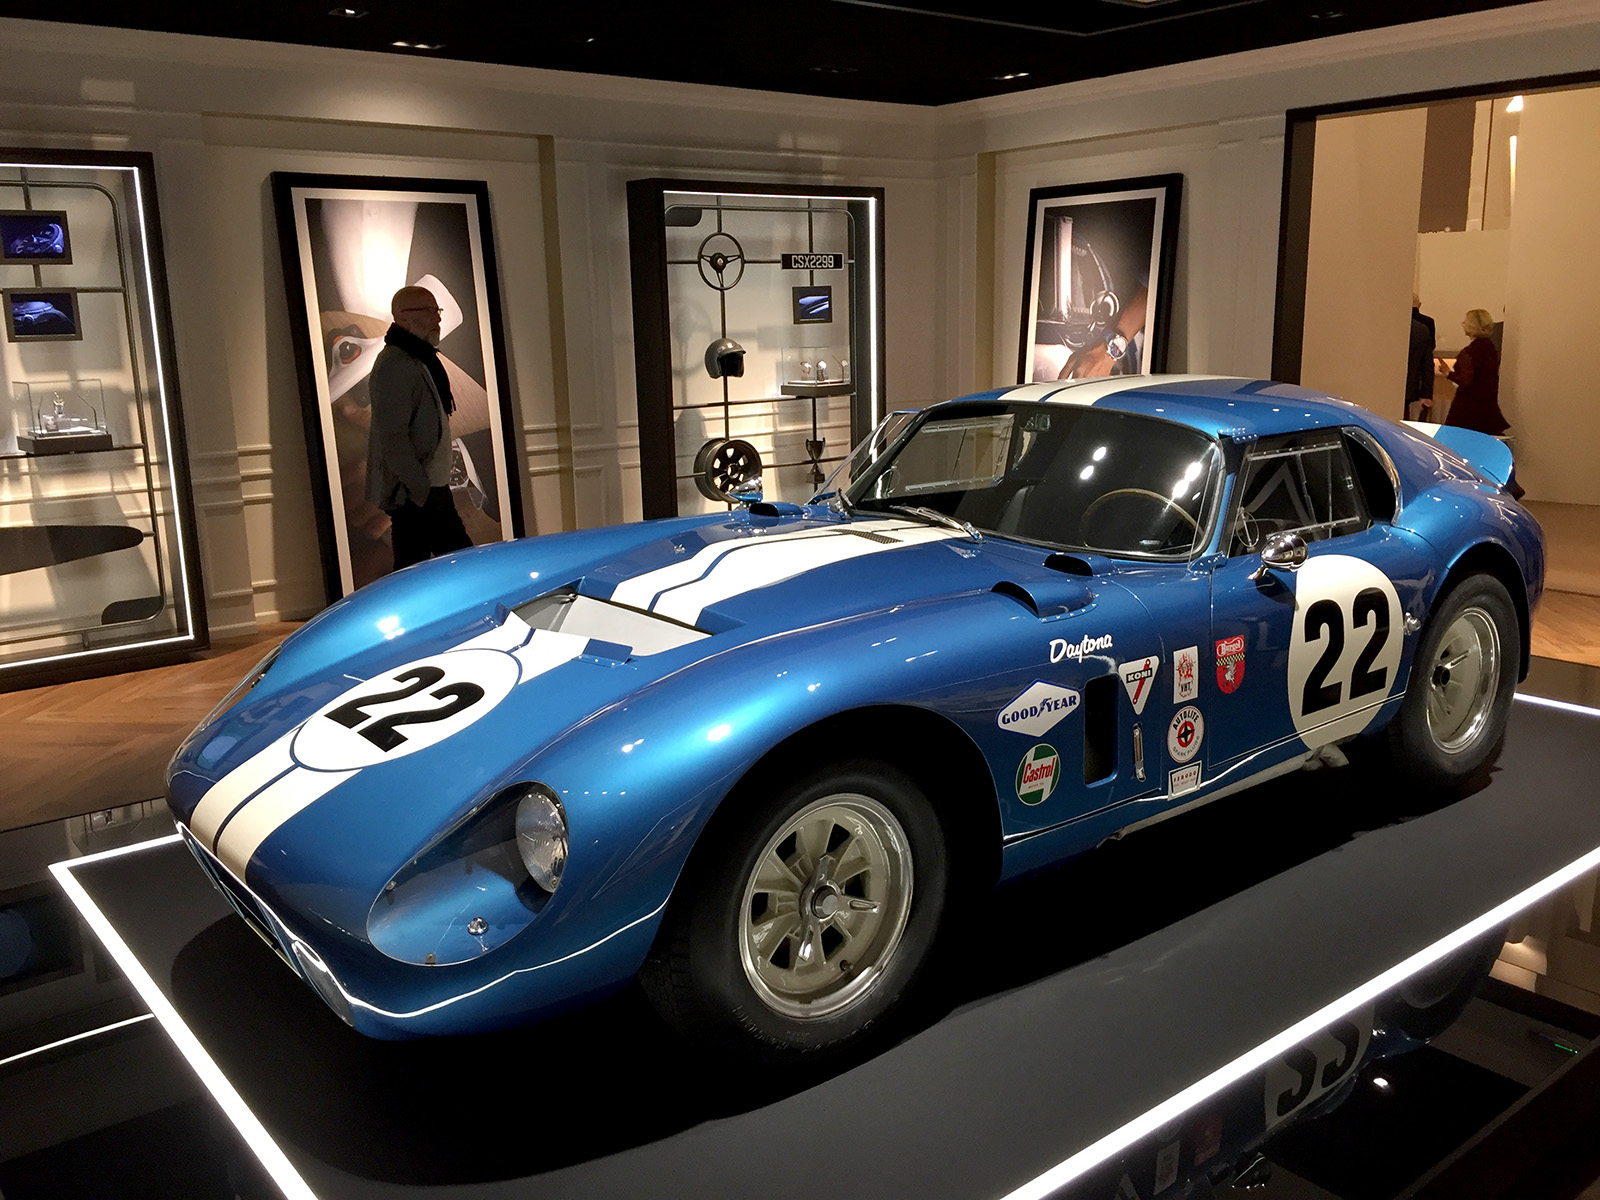 Baume & Mercier - SIHH 2017 - Shelby Cobra Daytona Coupe 1